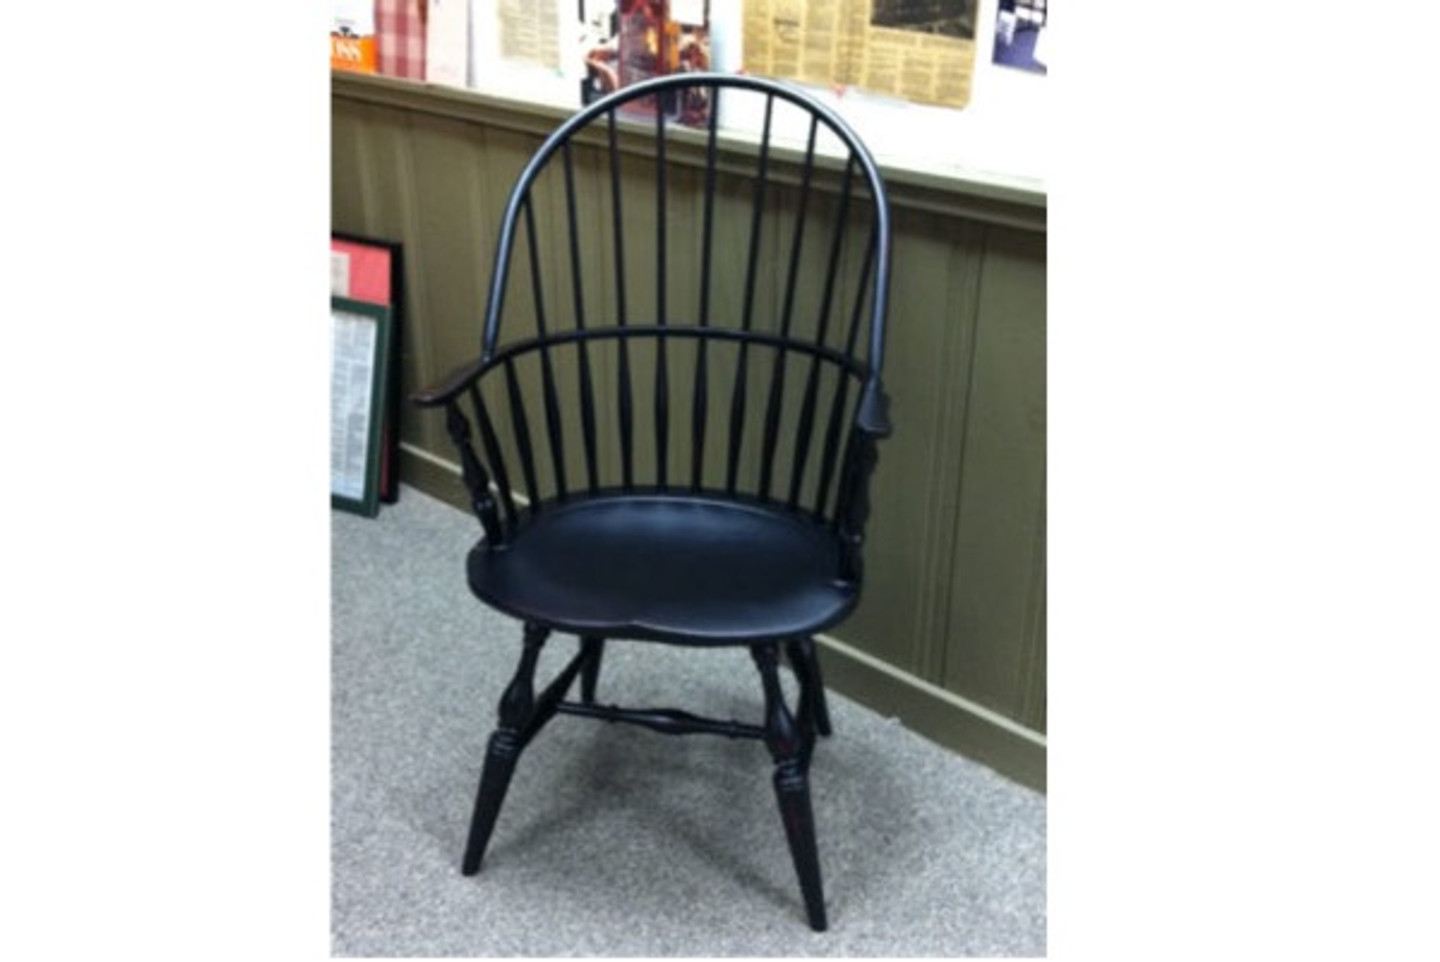 The Windsor Bowback Arm Chair is often painted in black or forest green.